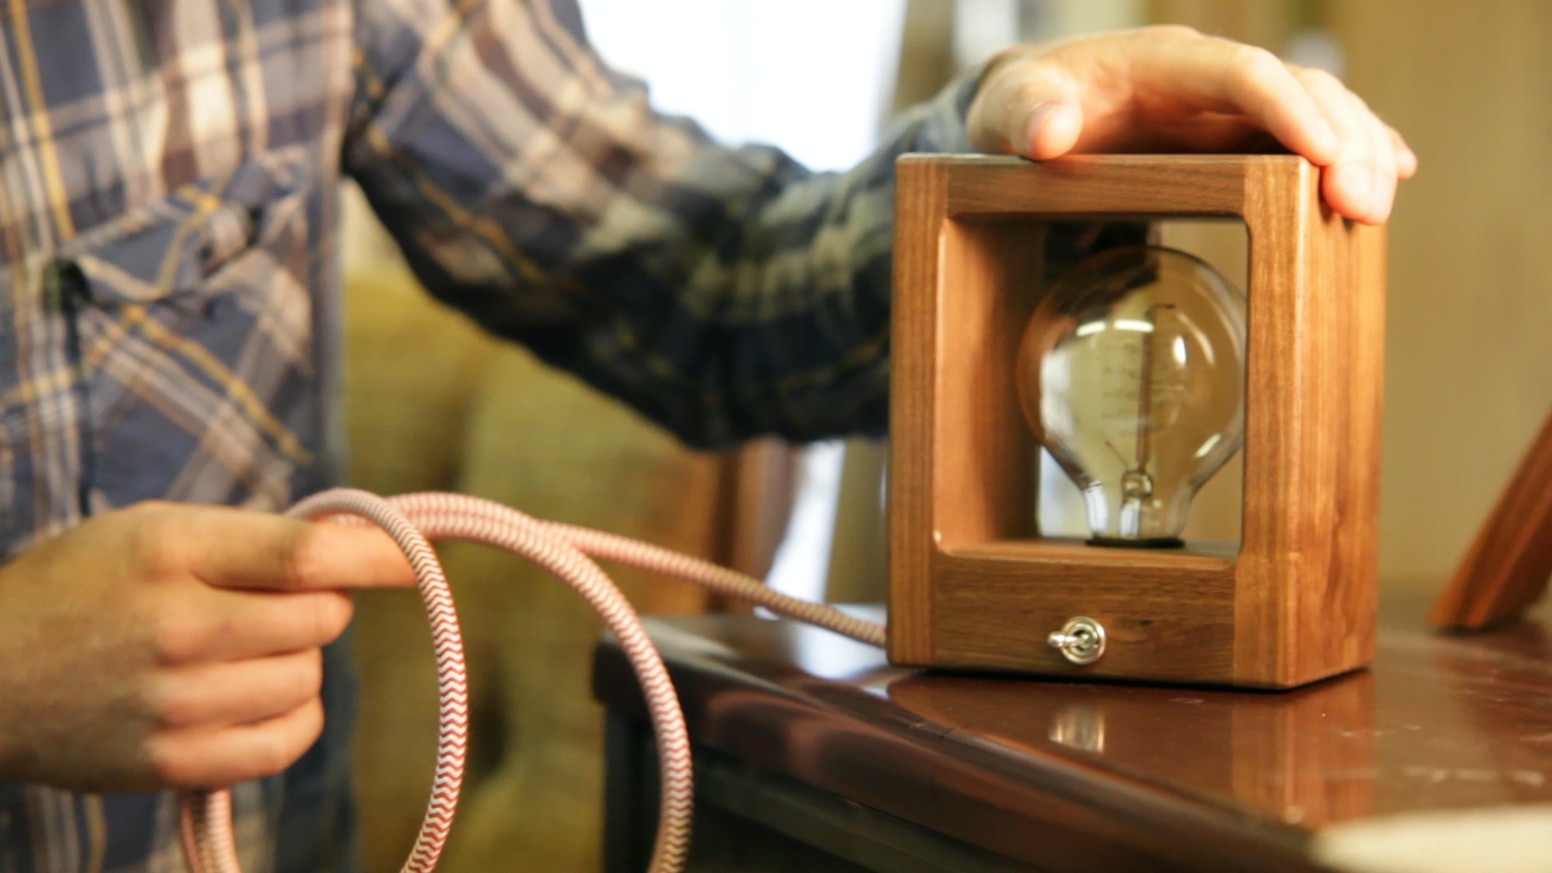 Carefully Crafted Modern Lamps with Vintage Style to Light Up Your Home, Office, Vintage RV, or Teardrop Trailer.